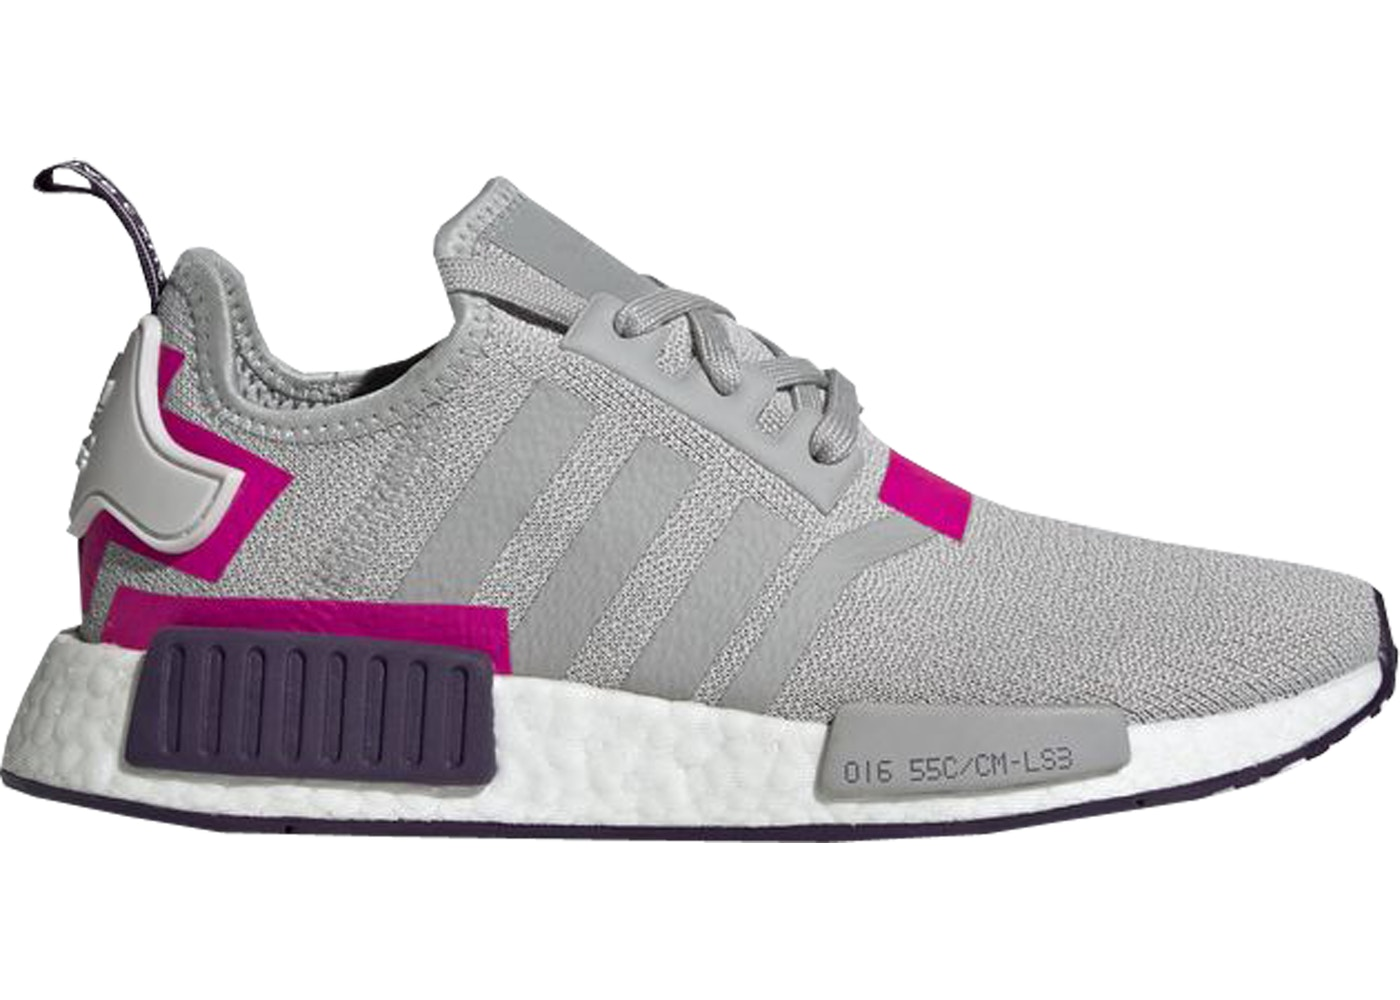 reputable site e2e7f 83b57 adidas NMD R1 Grey Shock Pink (W)